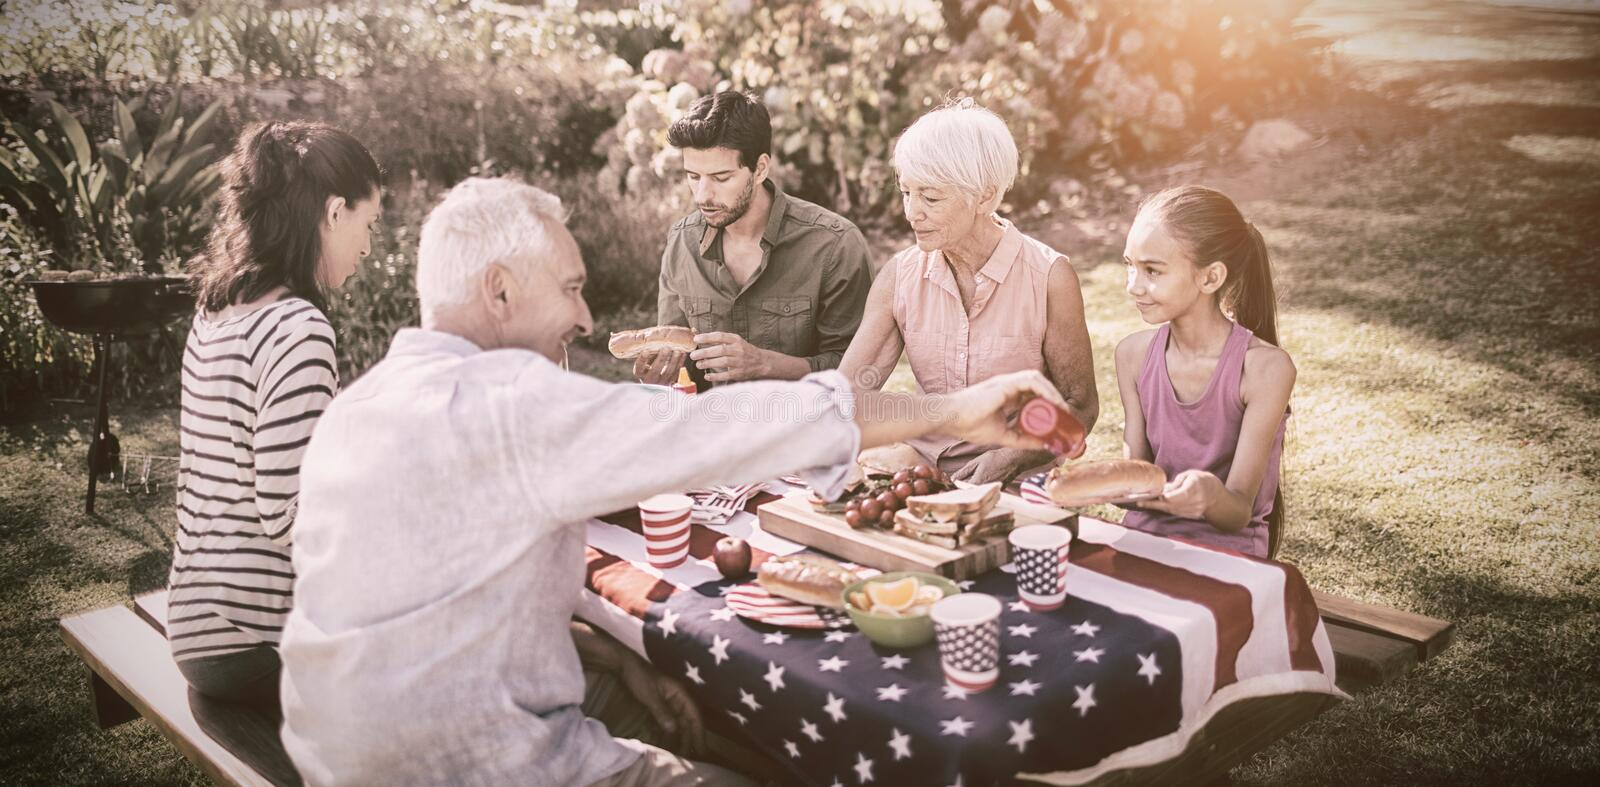 Happy family having a picnic. On an american tableclothe royalty free stock photo